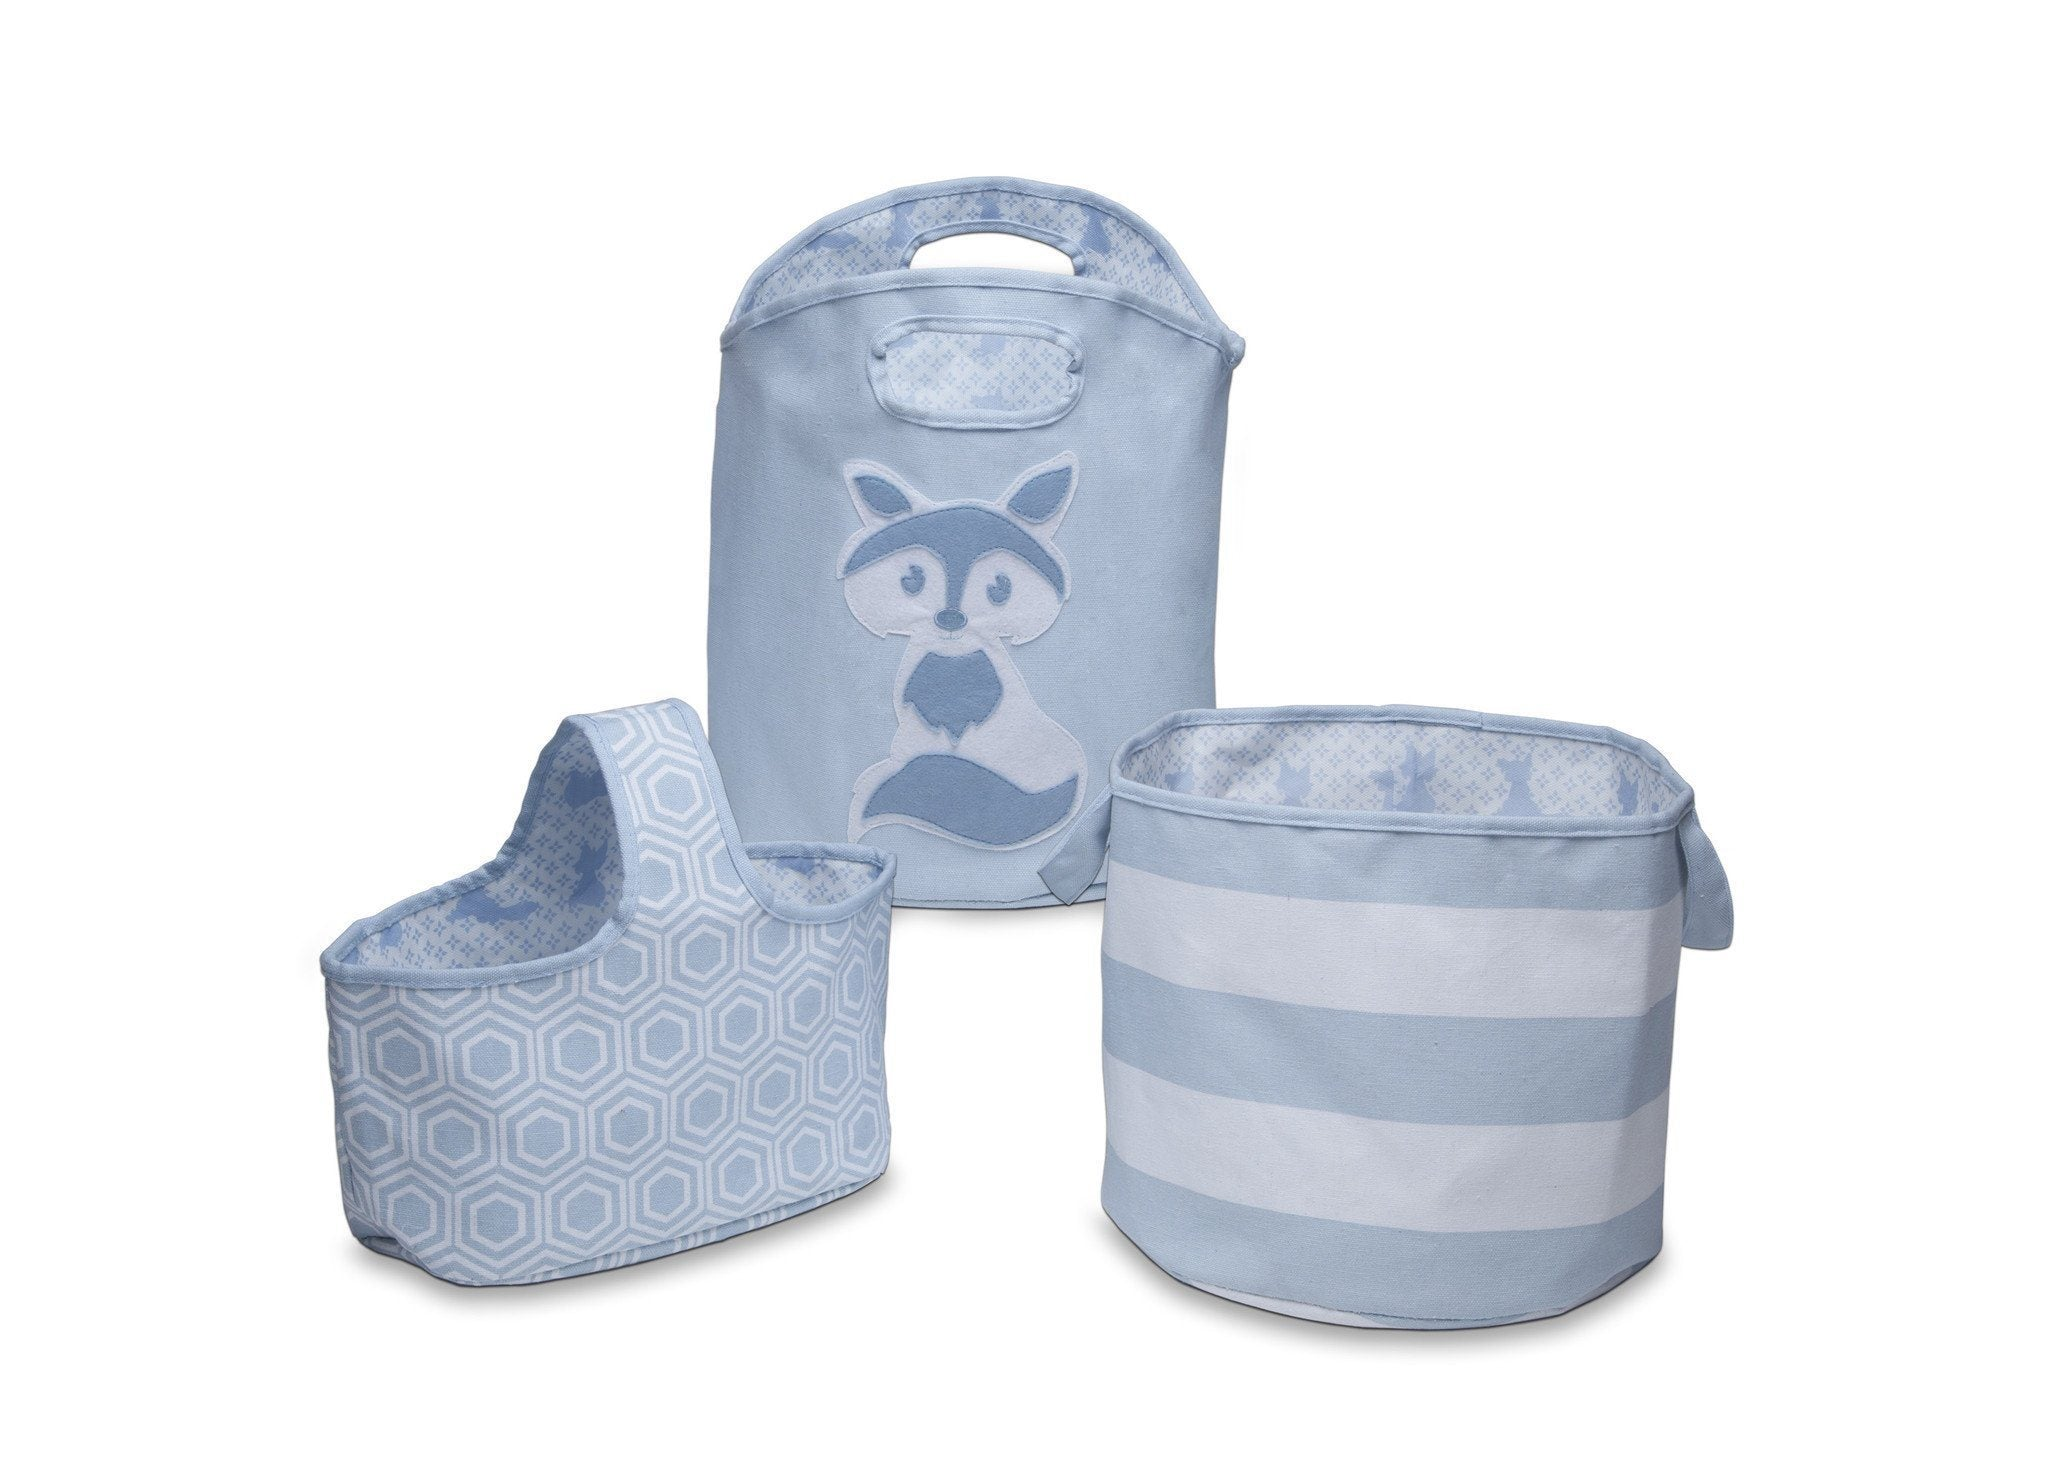 Delta Children's Blue (427) 3 Piece Character Storage Set, Front View b1b